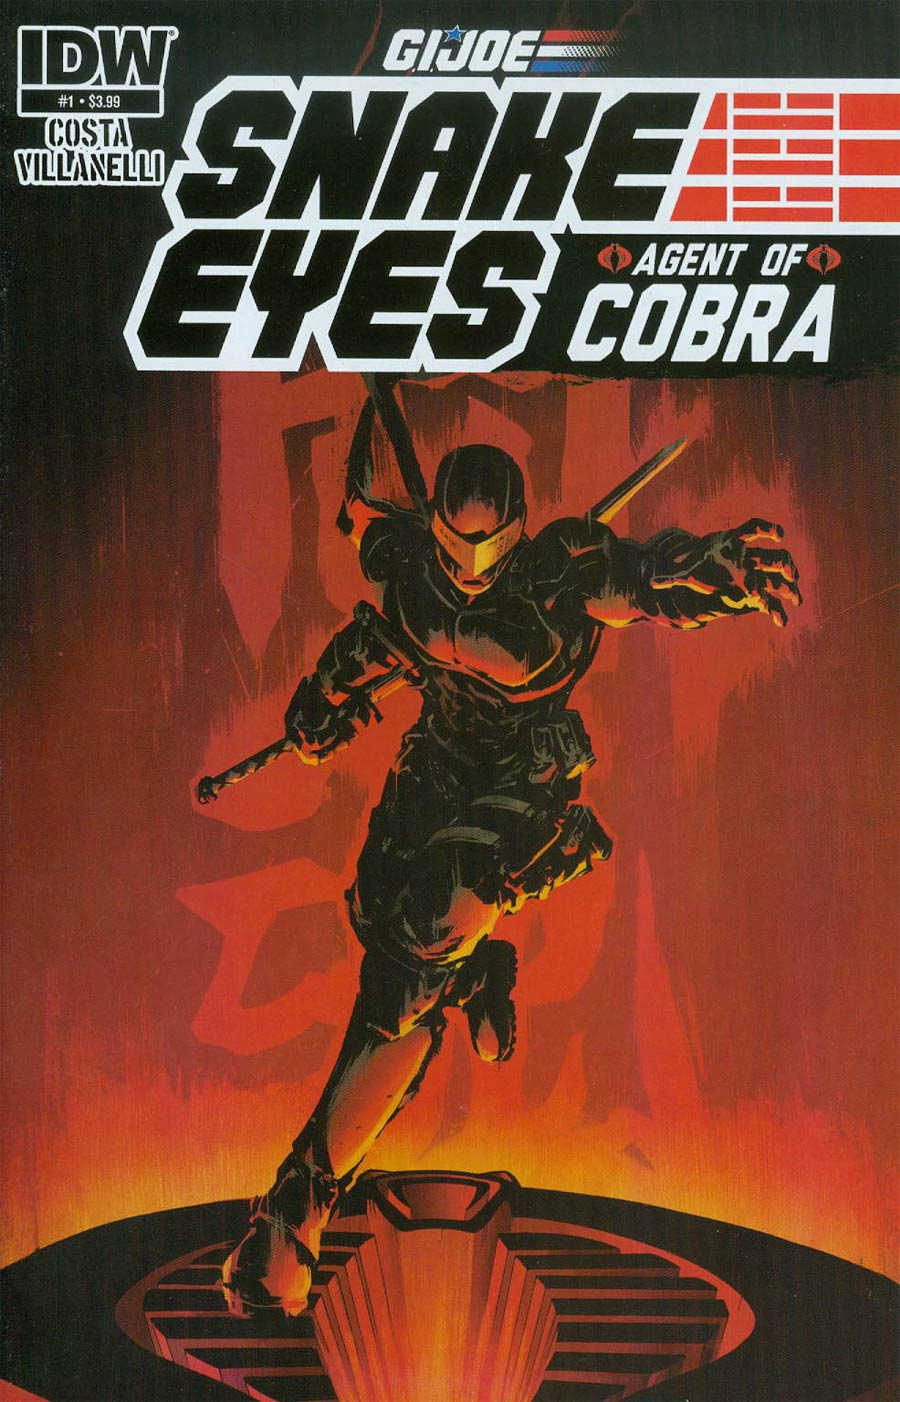 GI Joe Snake Eyes Agent Of Cobra #1 Cover A Regular Paolo Villanelli Cover